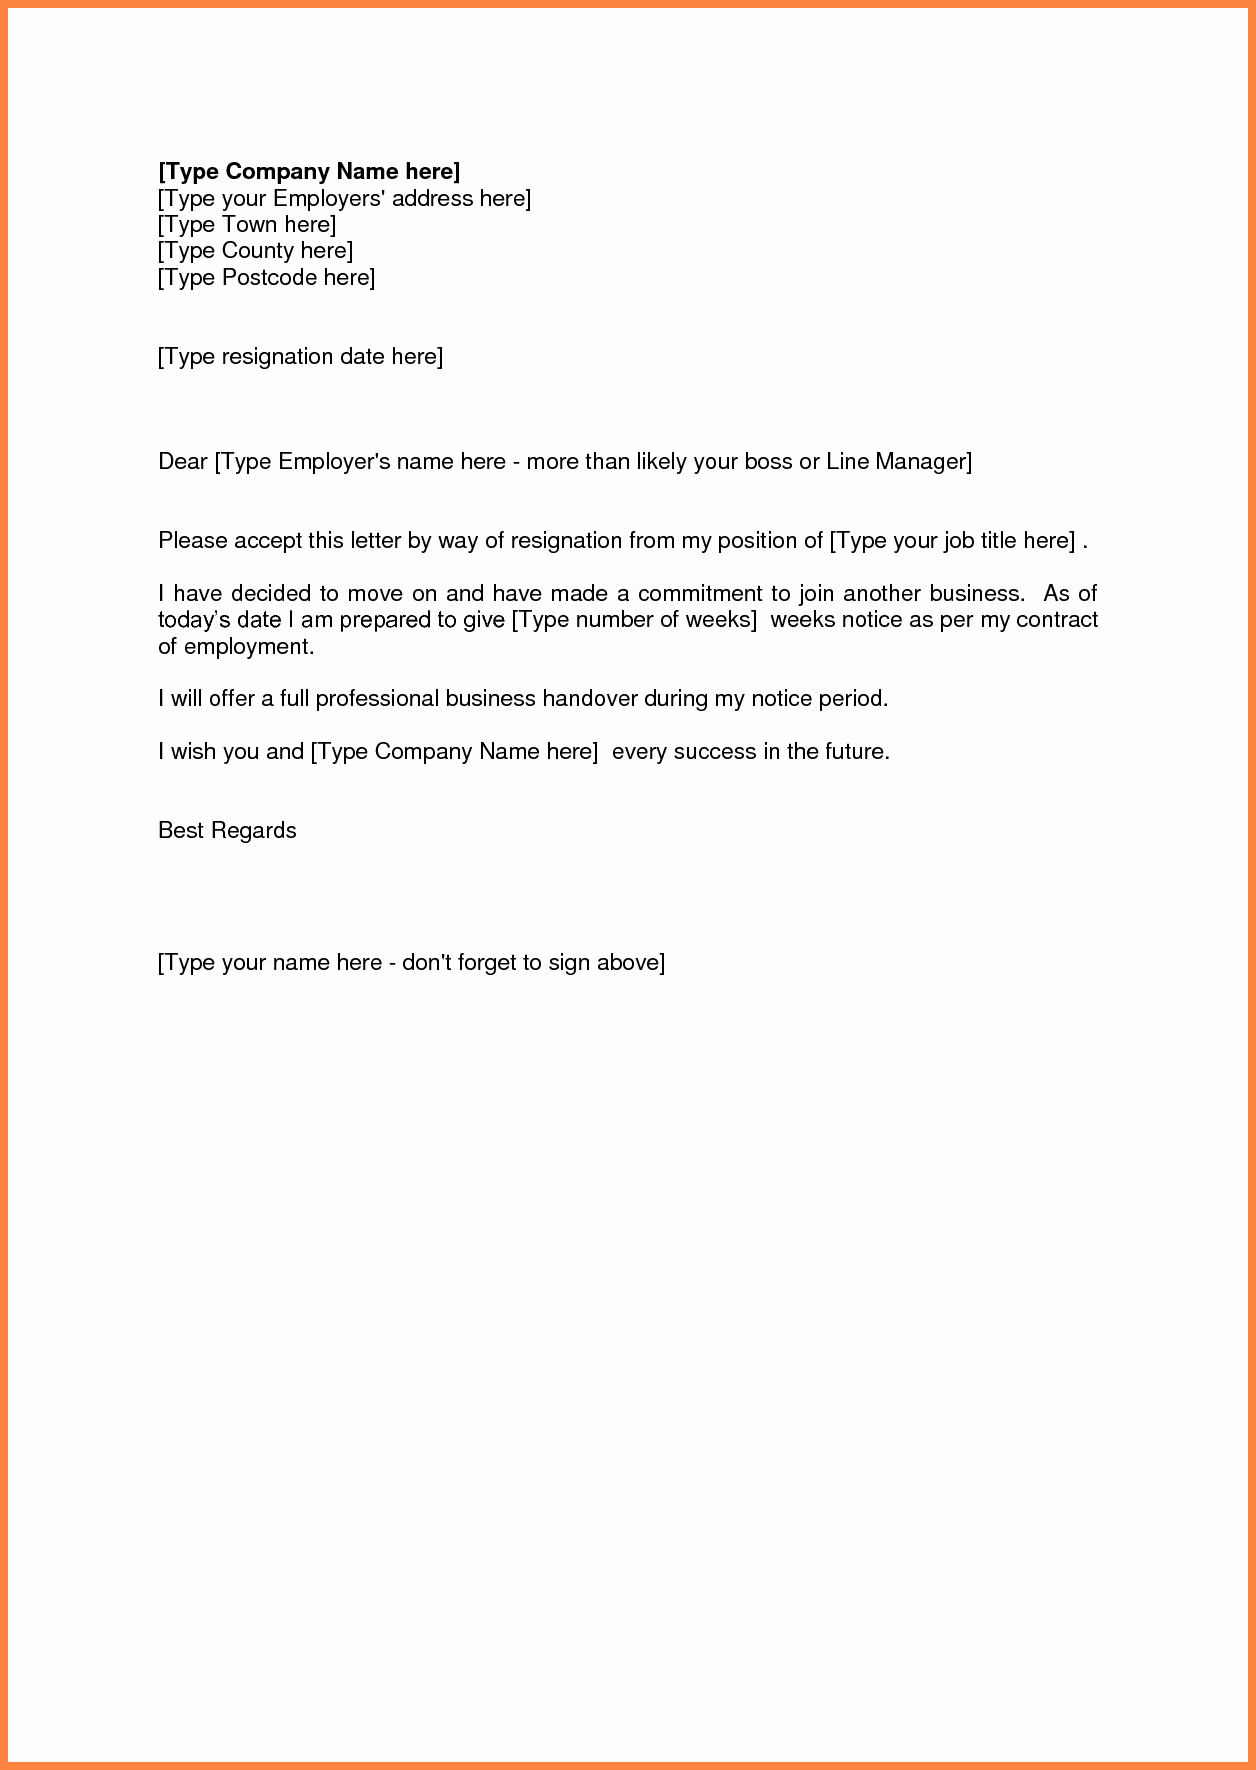 Two Weeks Notice Email Template Fresh 4 Resignation Letter 2 Week Notice Email